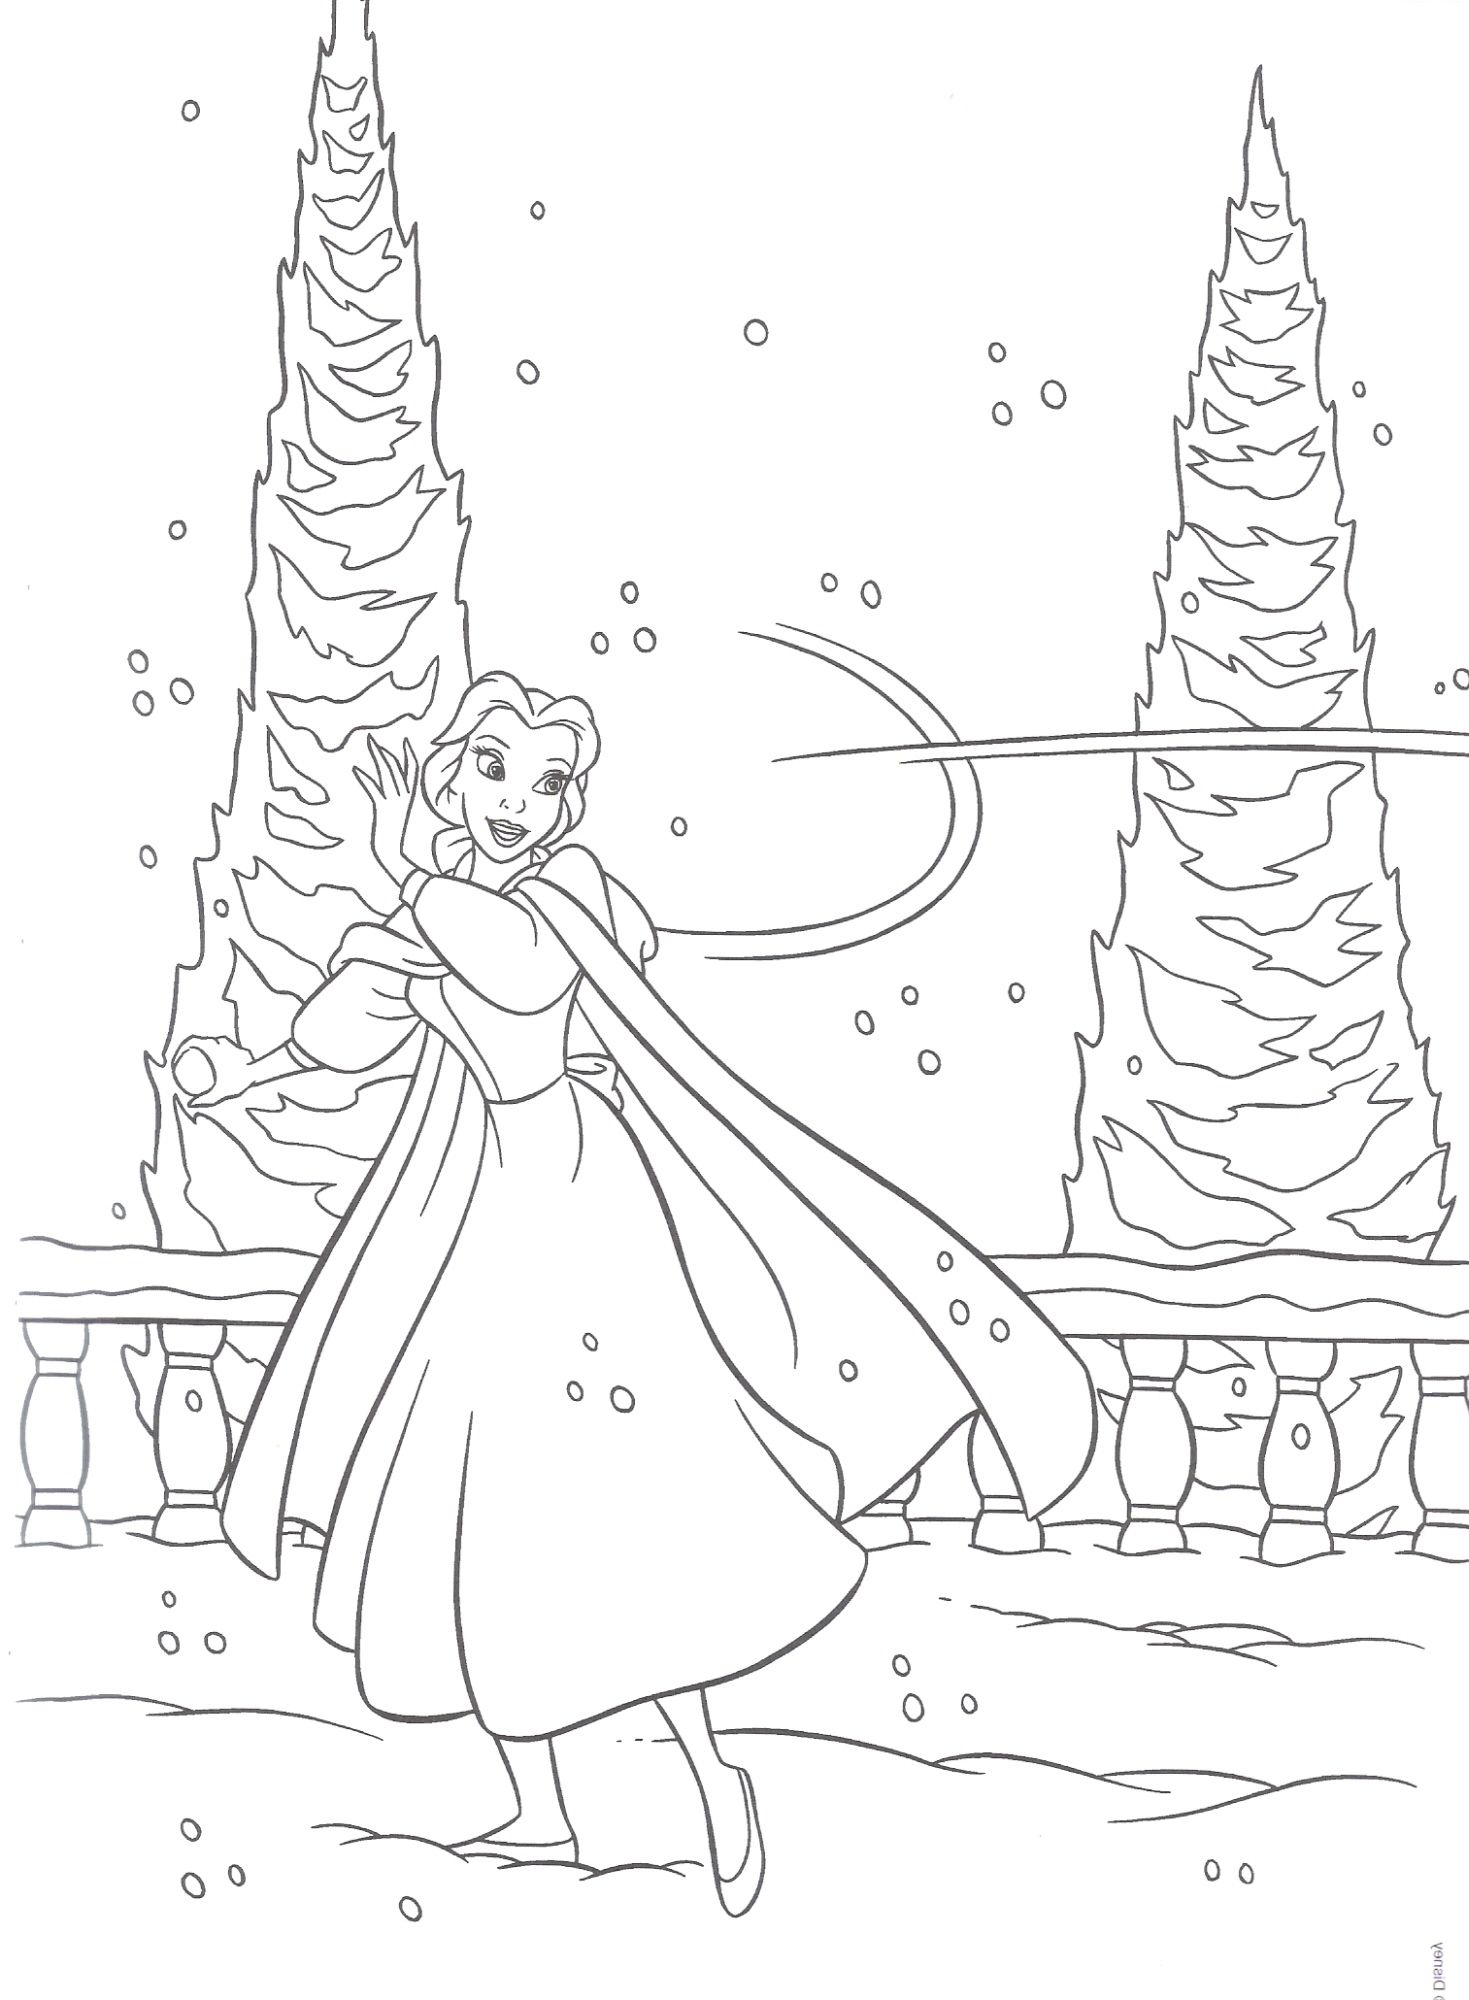 Free Printable Disney Beauty and Beast Cartoon Coloring Pages